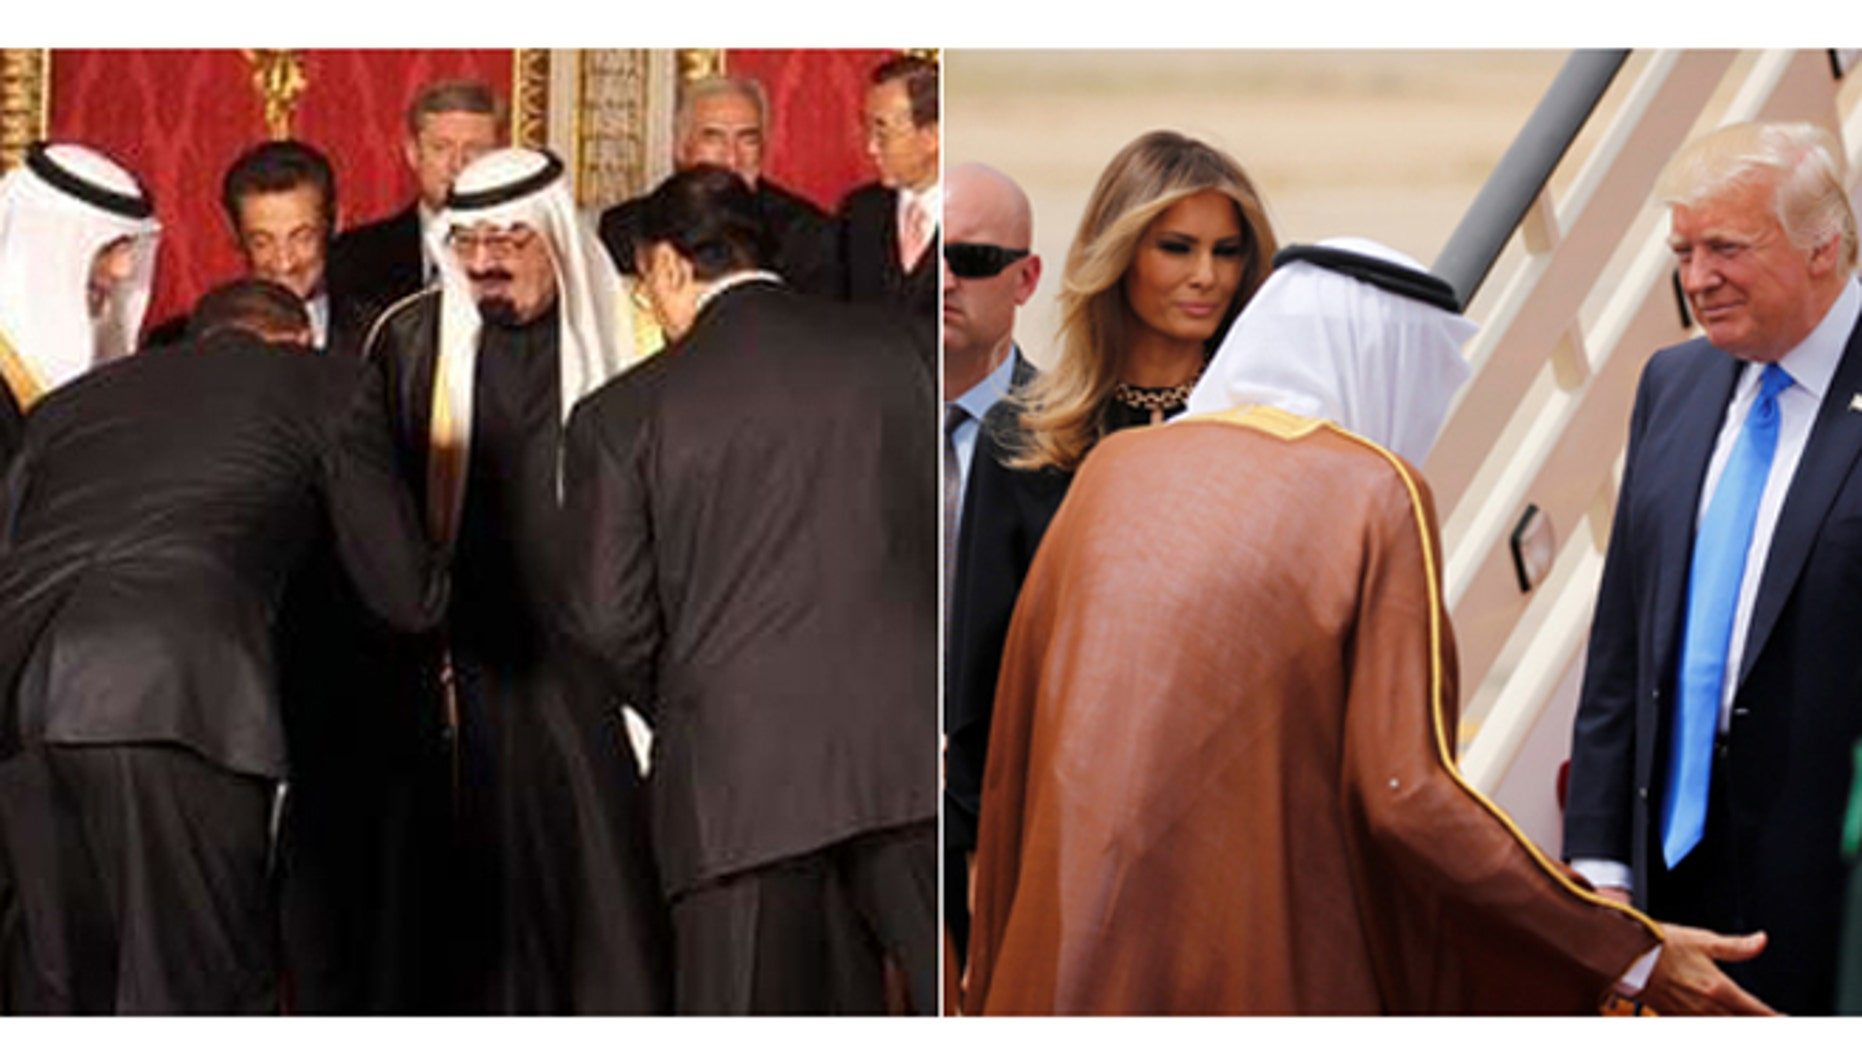 Trump Shakes Hands With Saudi Leader Doesnt Bow As Obama Appeared